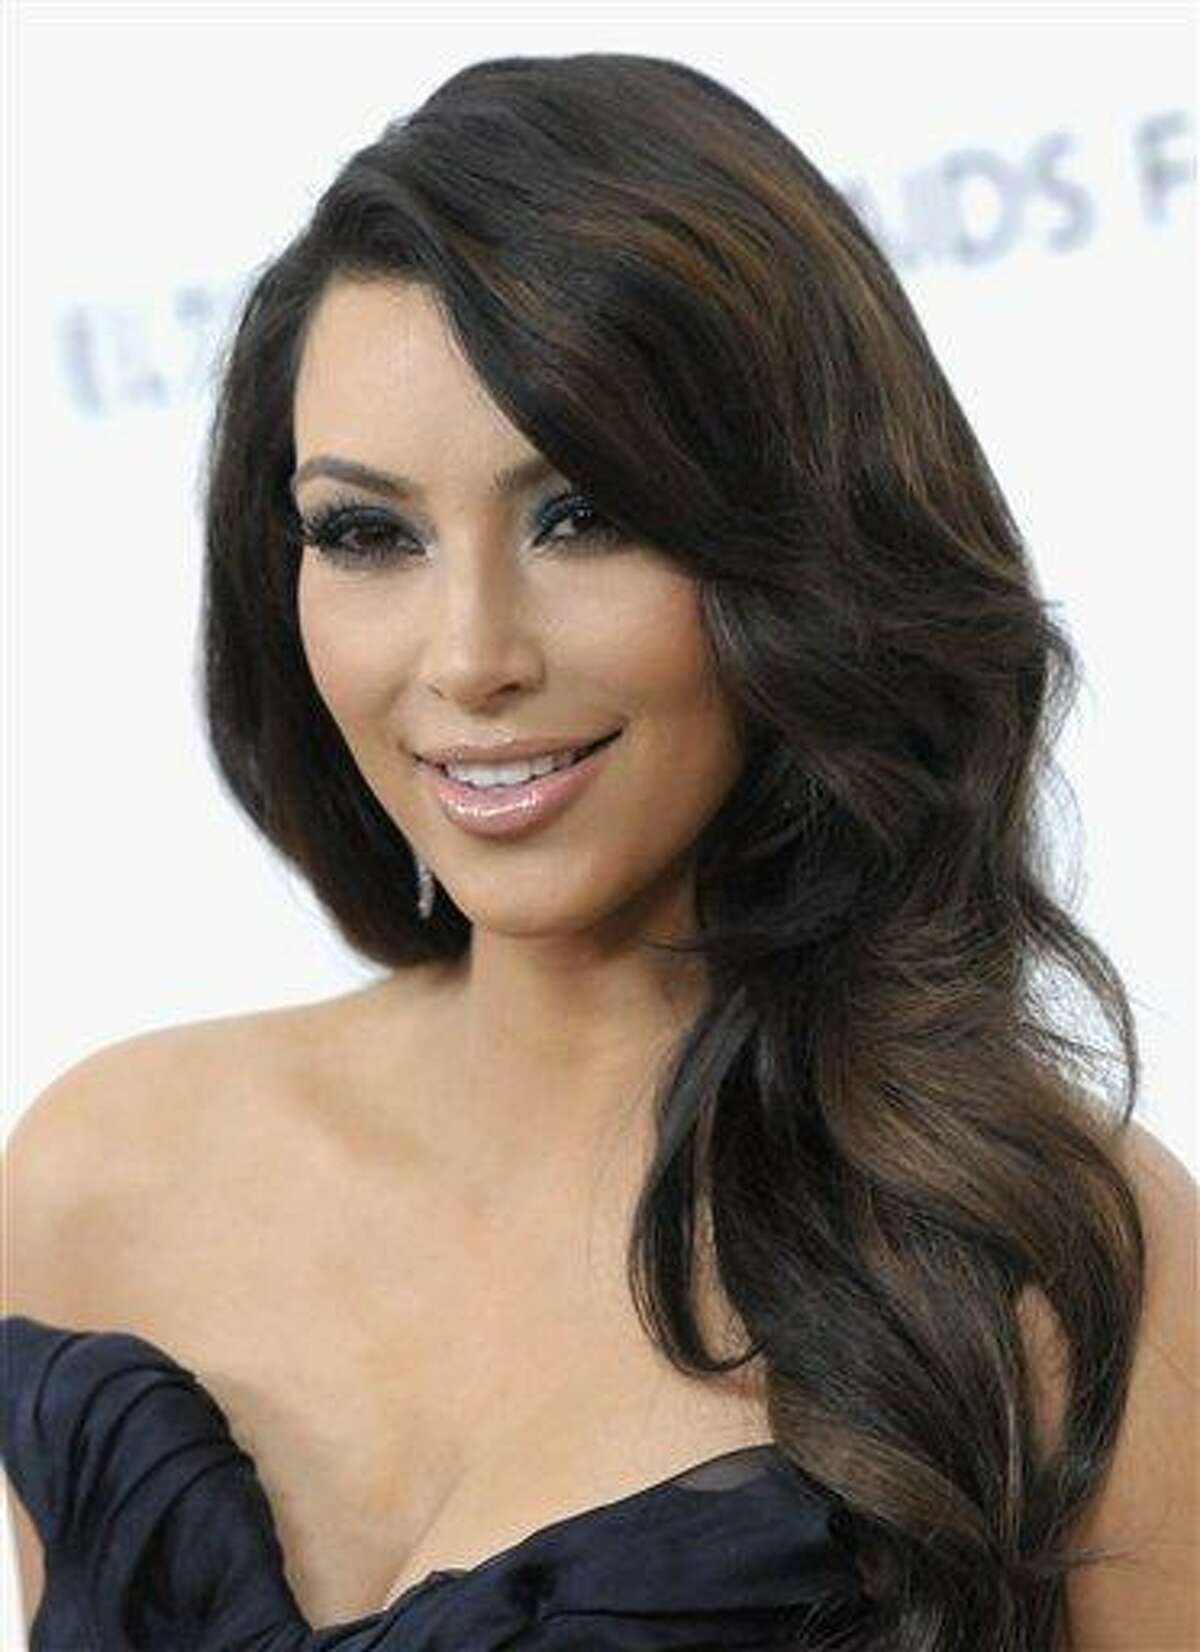 Television personality Kim Kardashian arrives at the 2011 Elton John Academy Award viewing party in West Hollywood, Calif. on Sunday, Feb. 27, 2011. (AP Photo/Dan Steinberg)